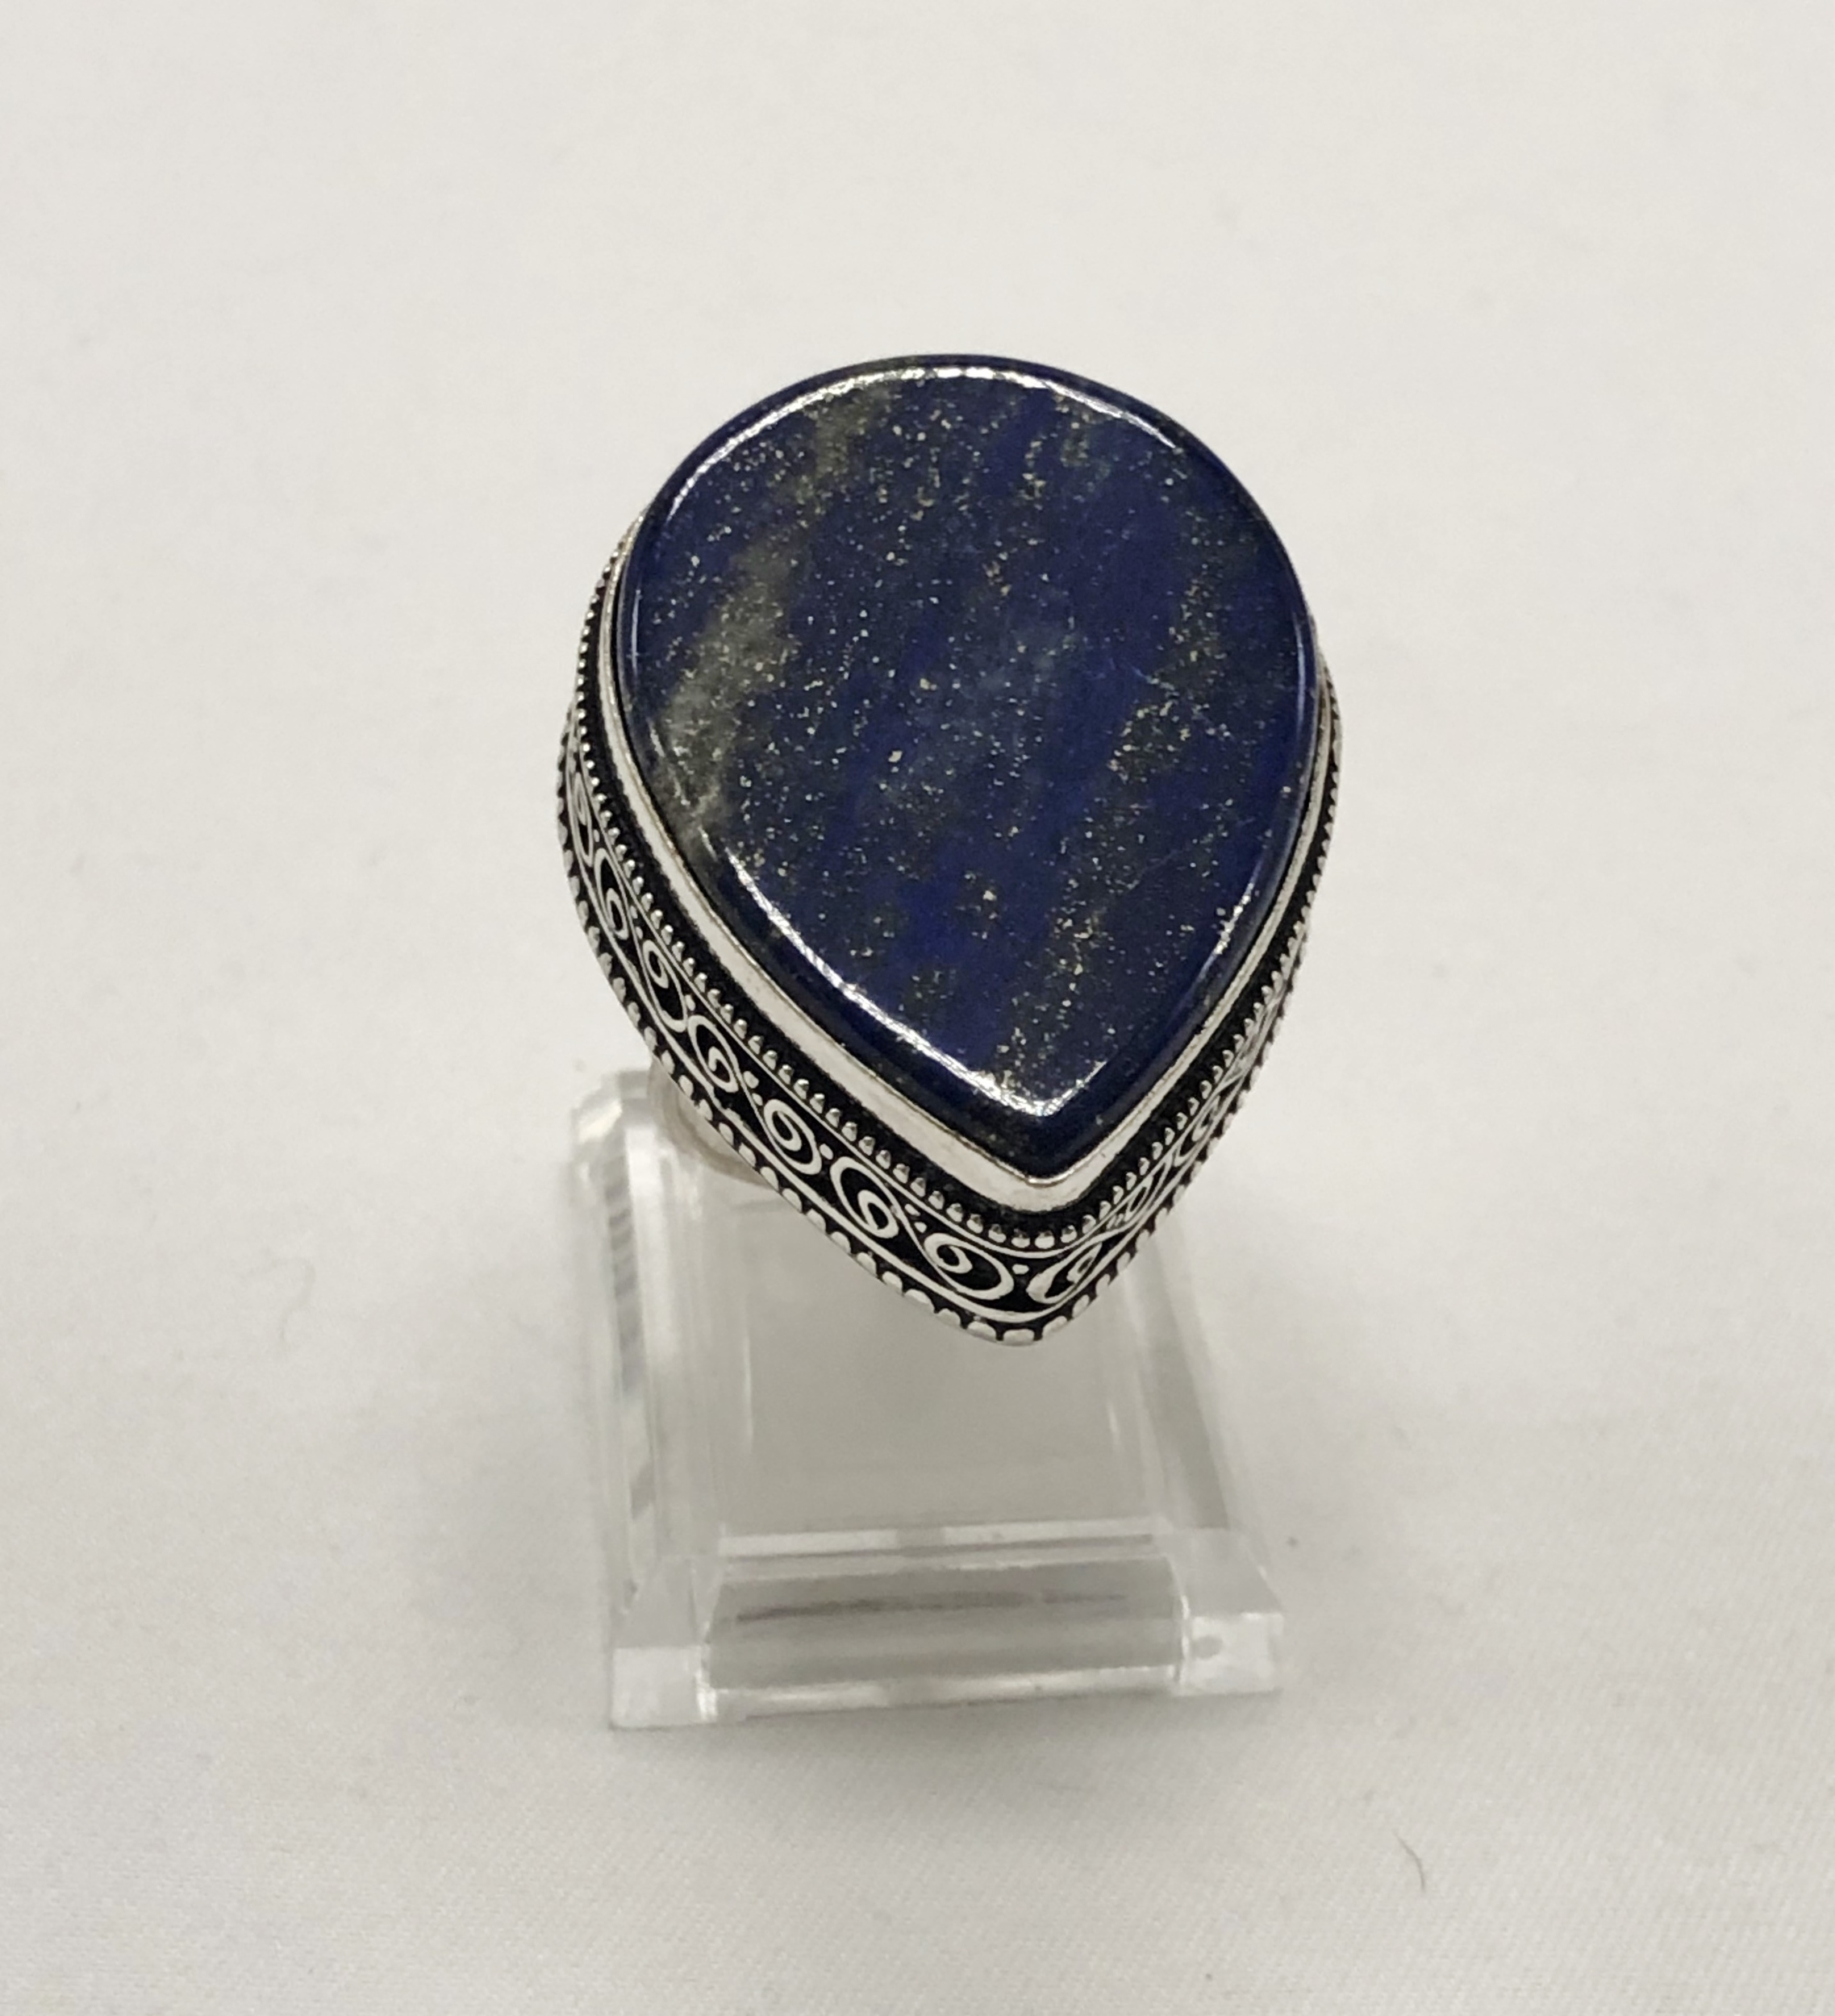 Bague lapis lazuli forme goutte montage antique argent 925 - Angel shop